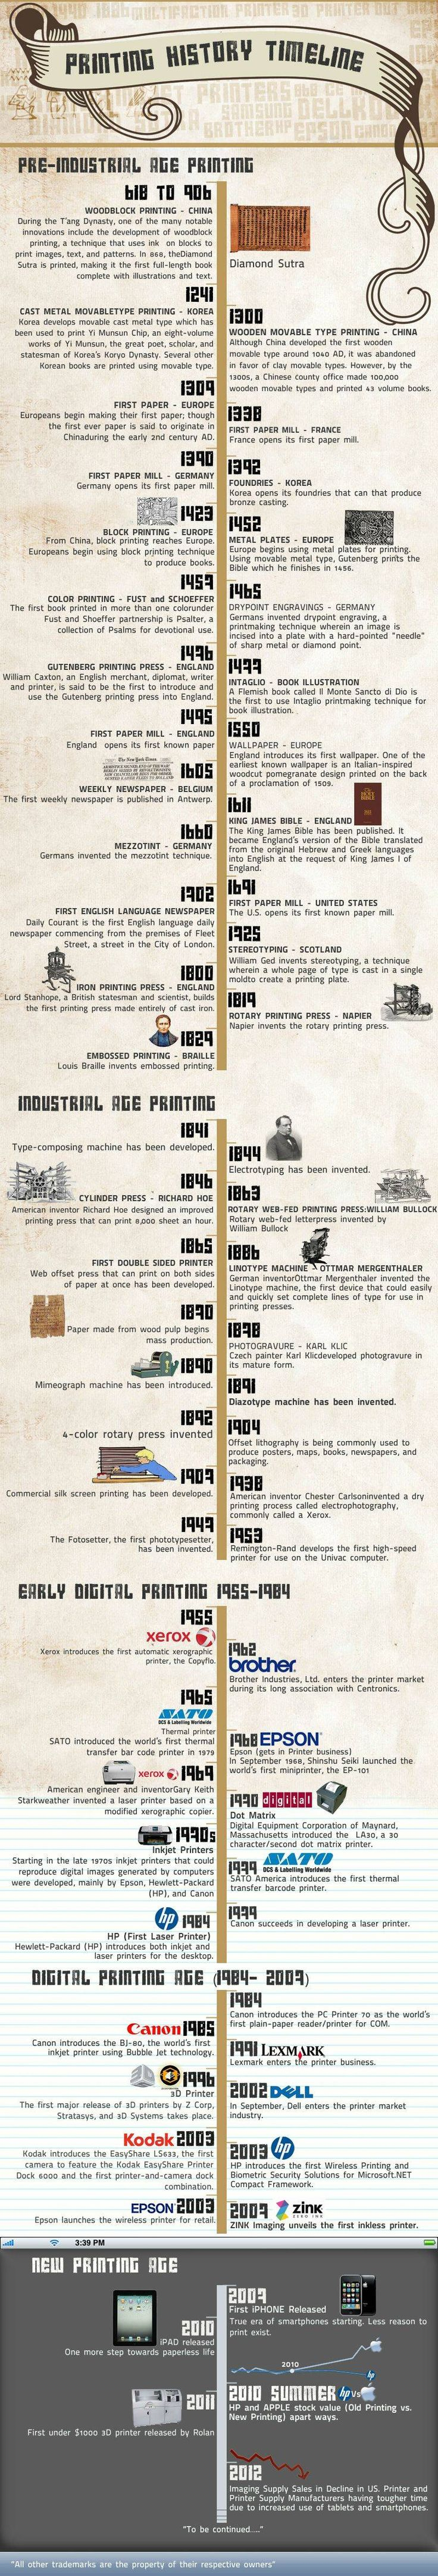 Just a reminder for all ebook enthusiasts – this infographic shows the roots of the modern book. Post-Kindle serialized ebook wouldn't be…